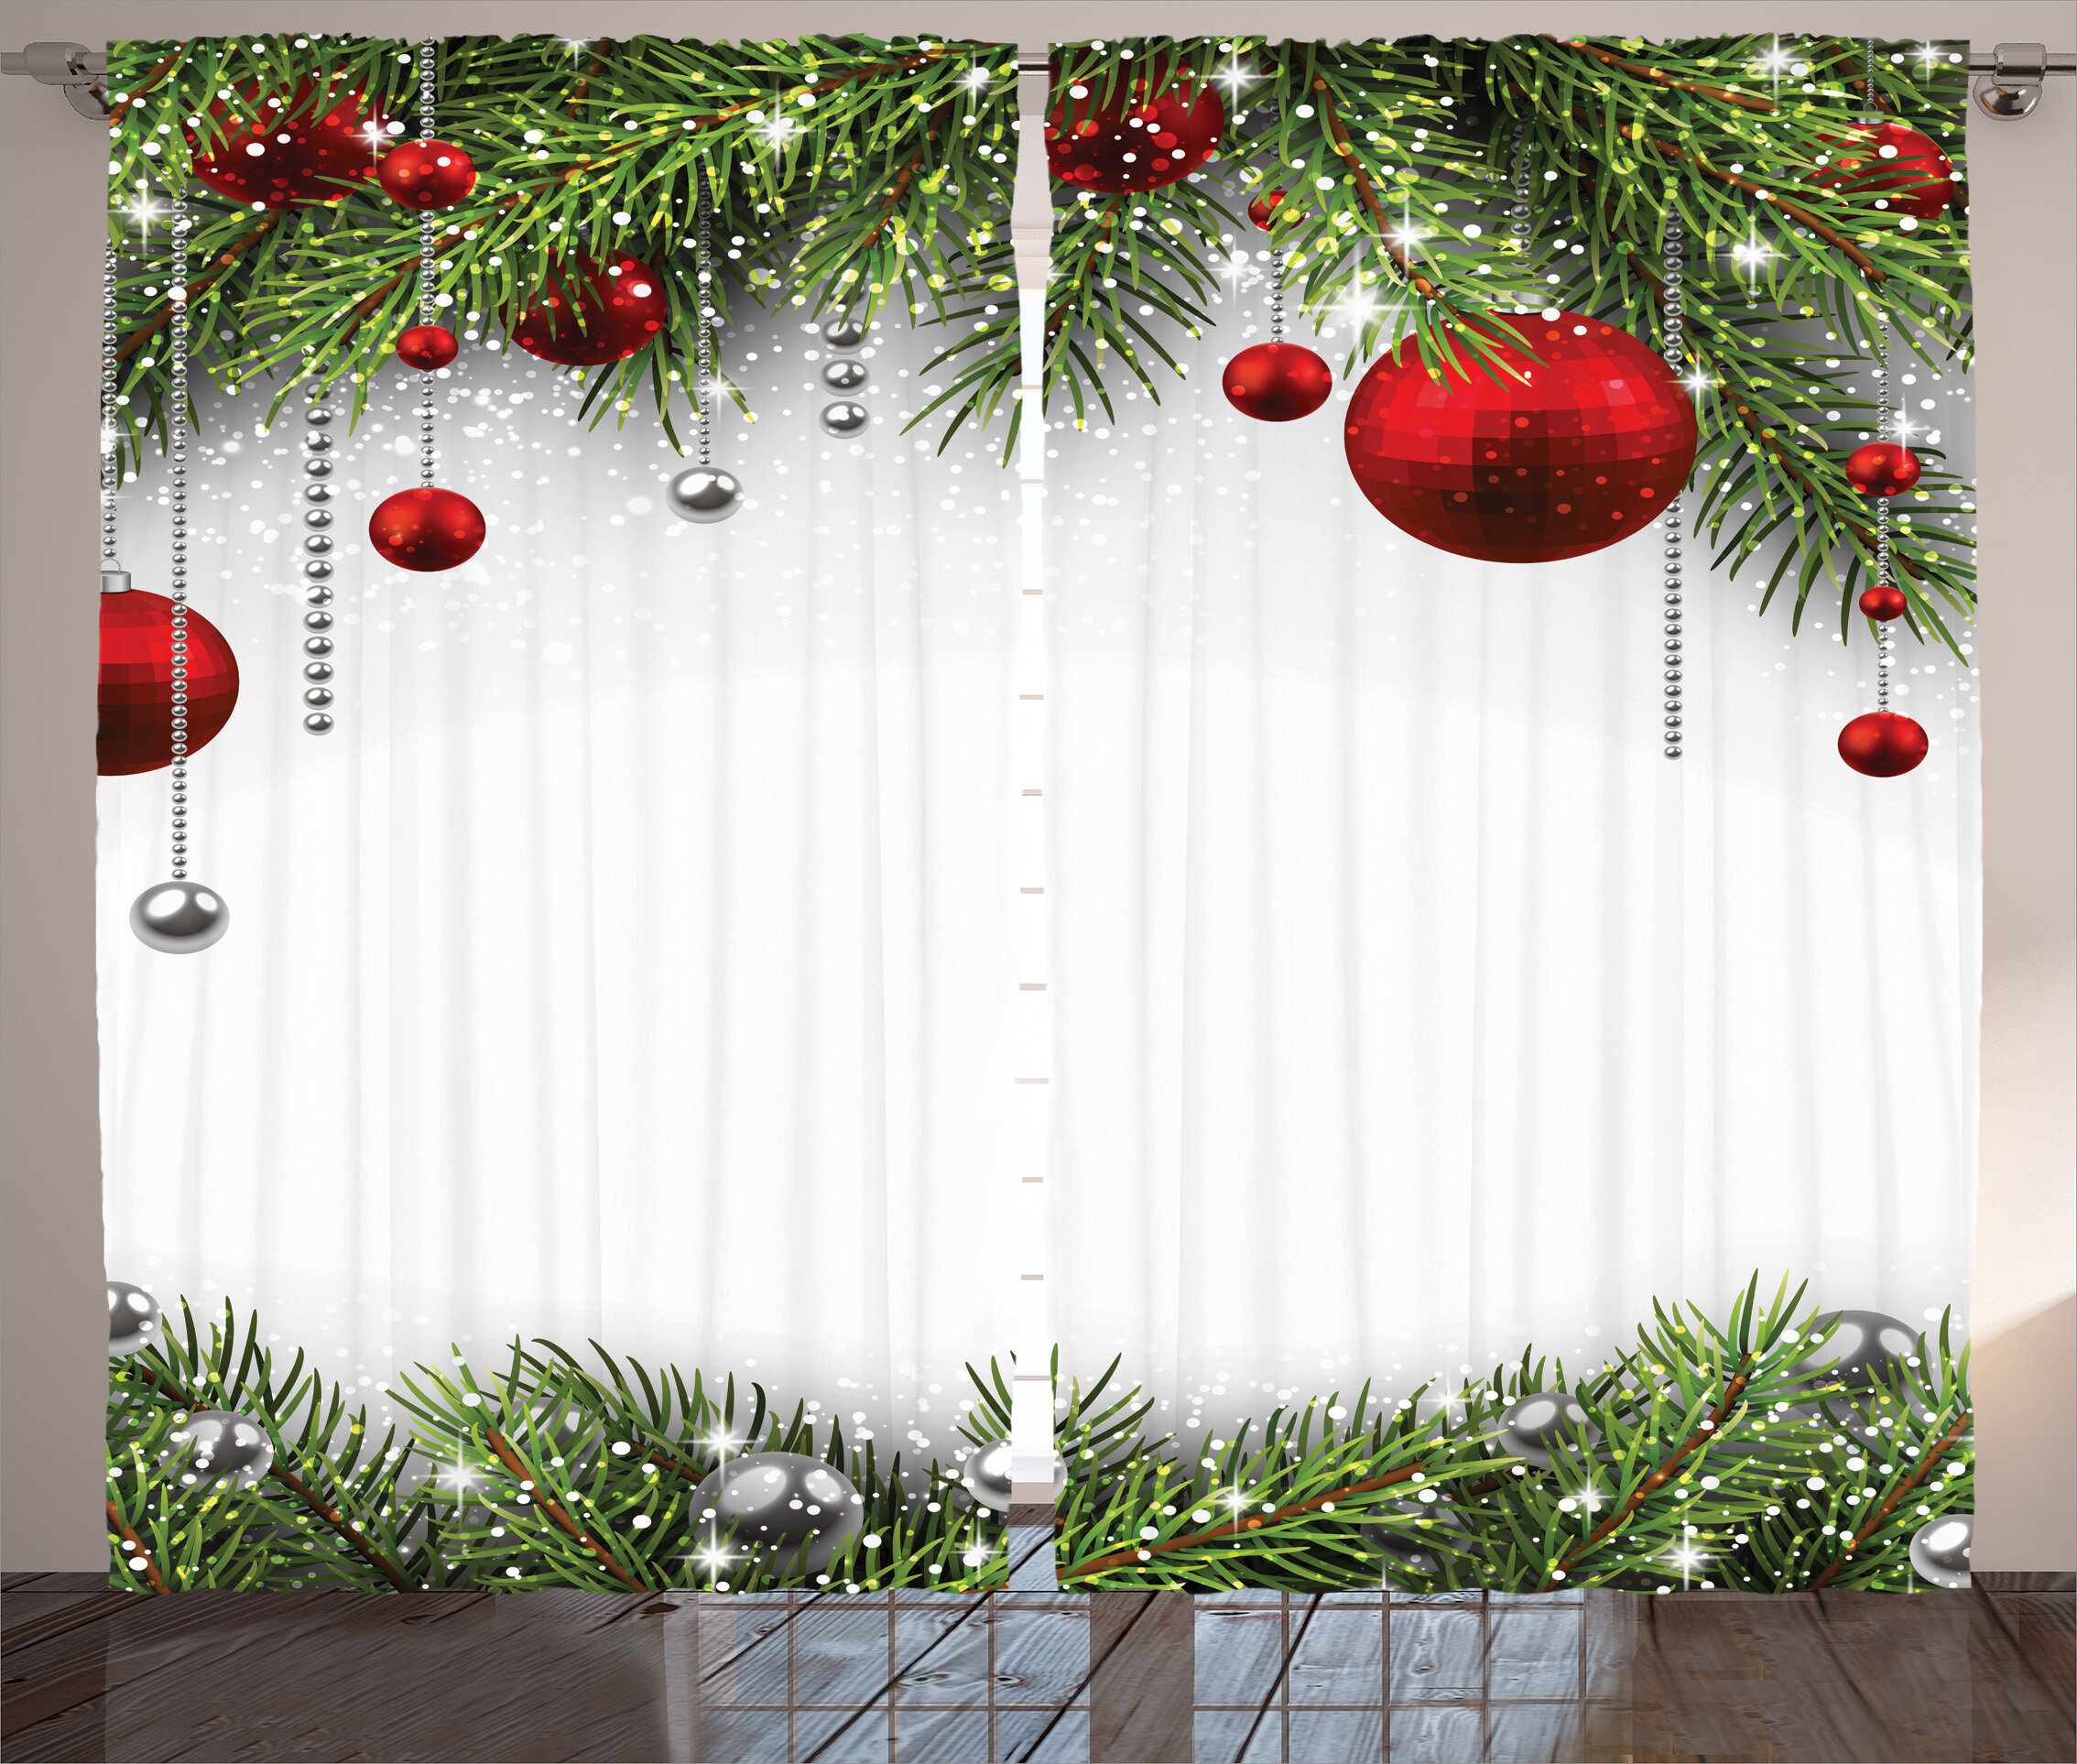 Christmas Decorations.Christmas Decorations Noel Backdrop With Fir Leaves Ative Balls Classic Religious Graphic Print Text Semi Sheer Rod Pocket Curtain Panels